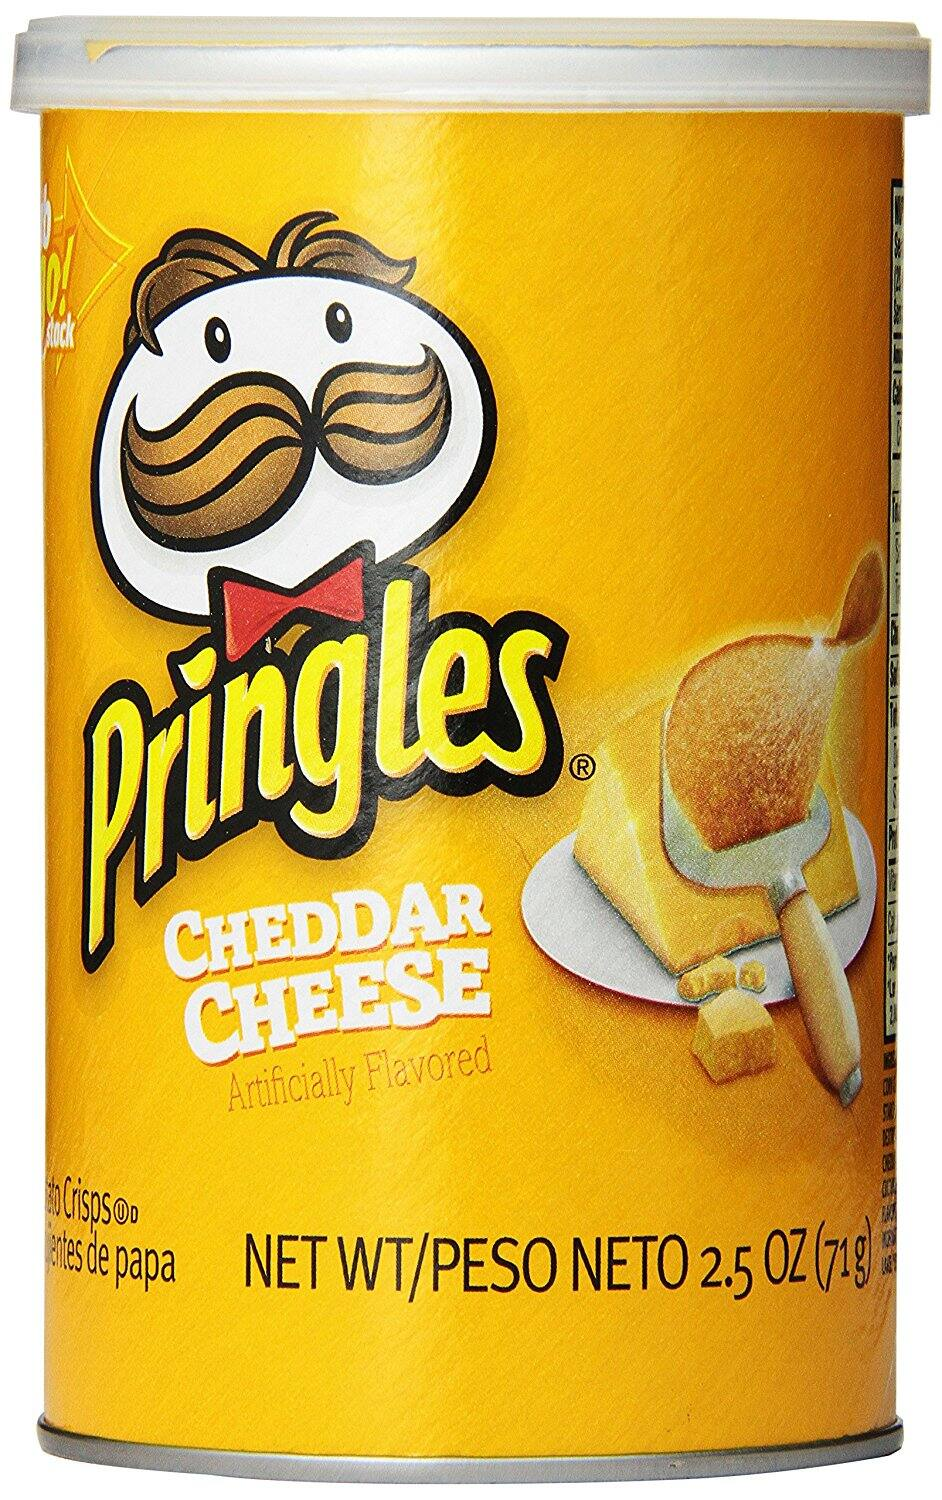 Amazon.com - Pringles Cheddar Cheese Grab and Go Pack, 2.5 Ounce (Pack of 12) - As low as $5.30 with Free Shipping w/S&S